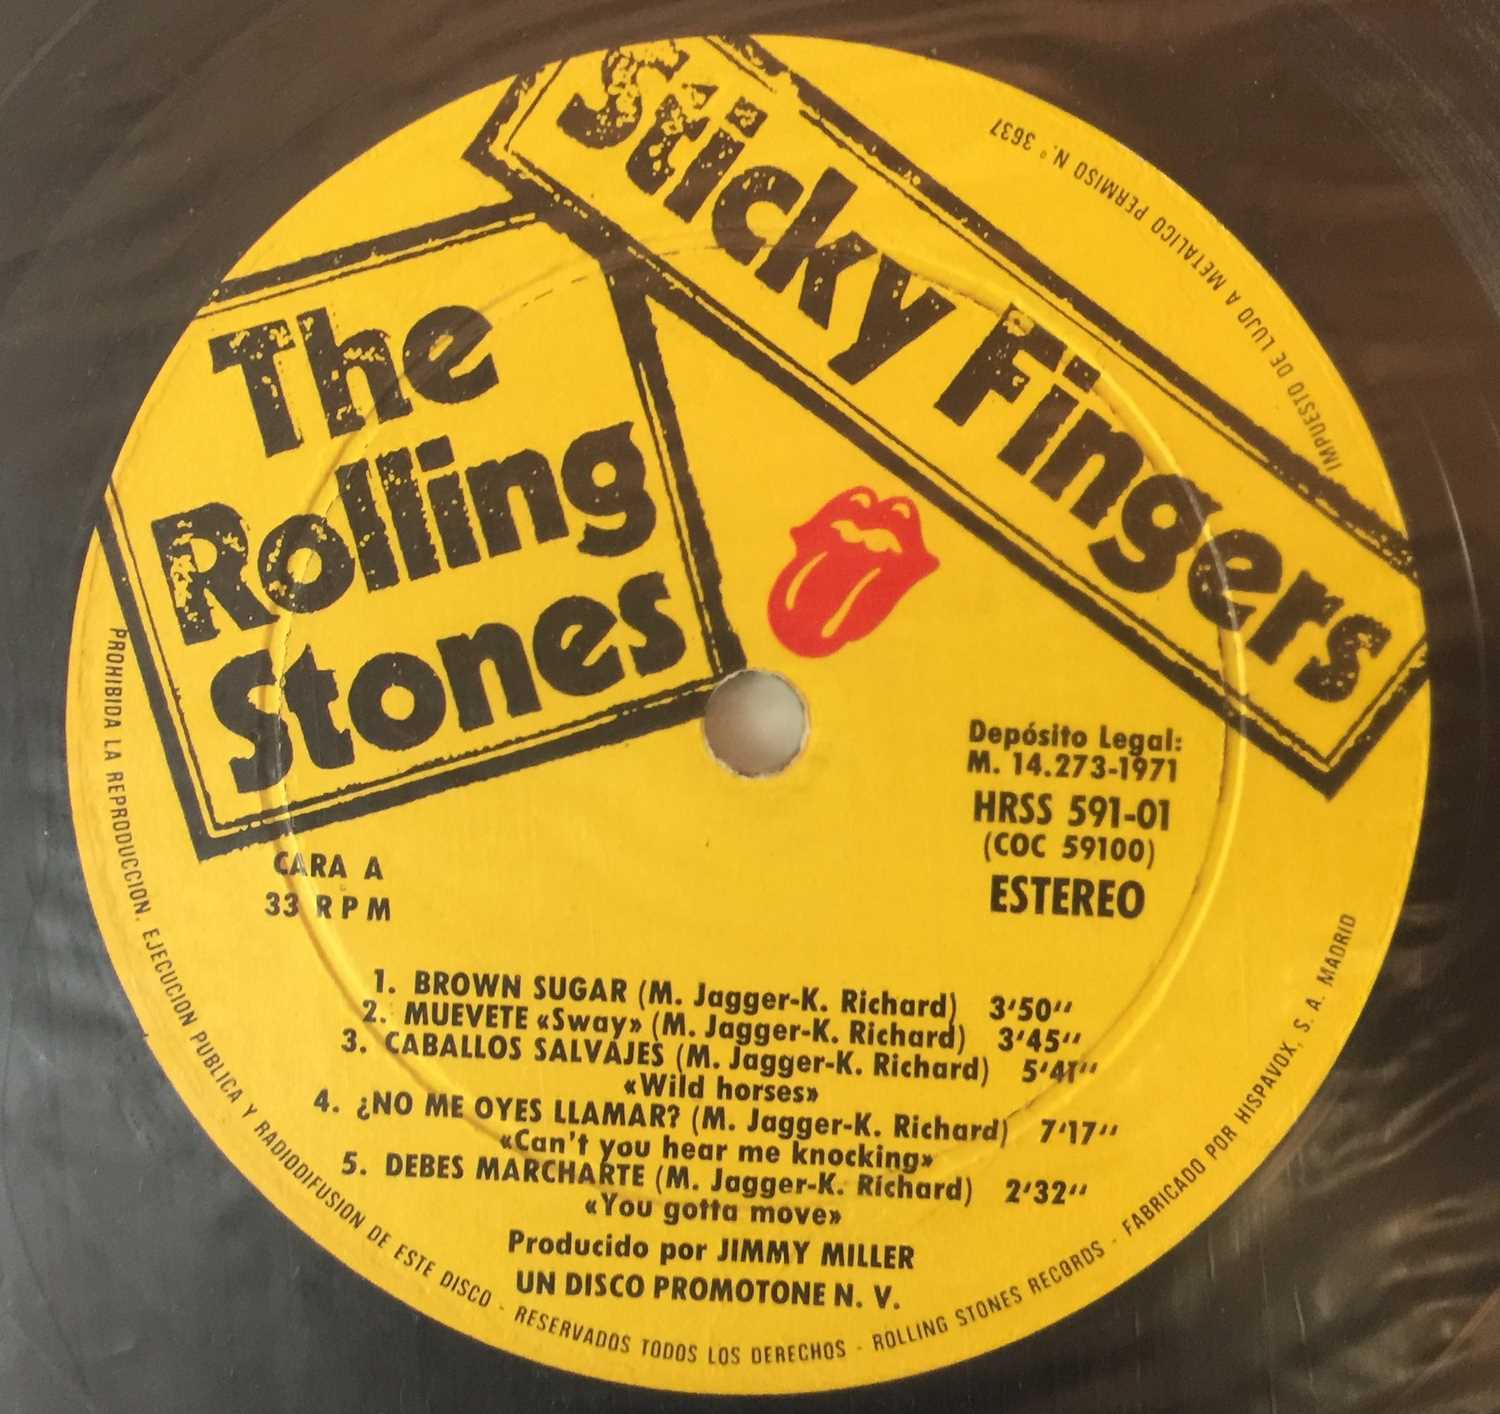 THE ROLLING STONES - STICKY FINGERS LPs (ORIGINAL UK AND SPANISH COPIES) - Image 3 of 4